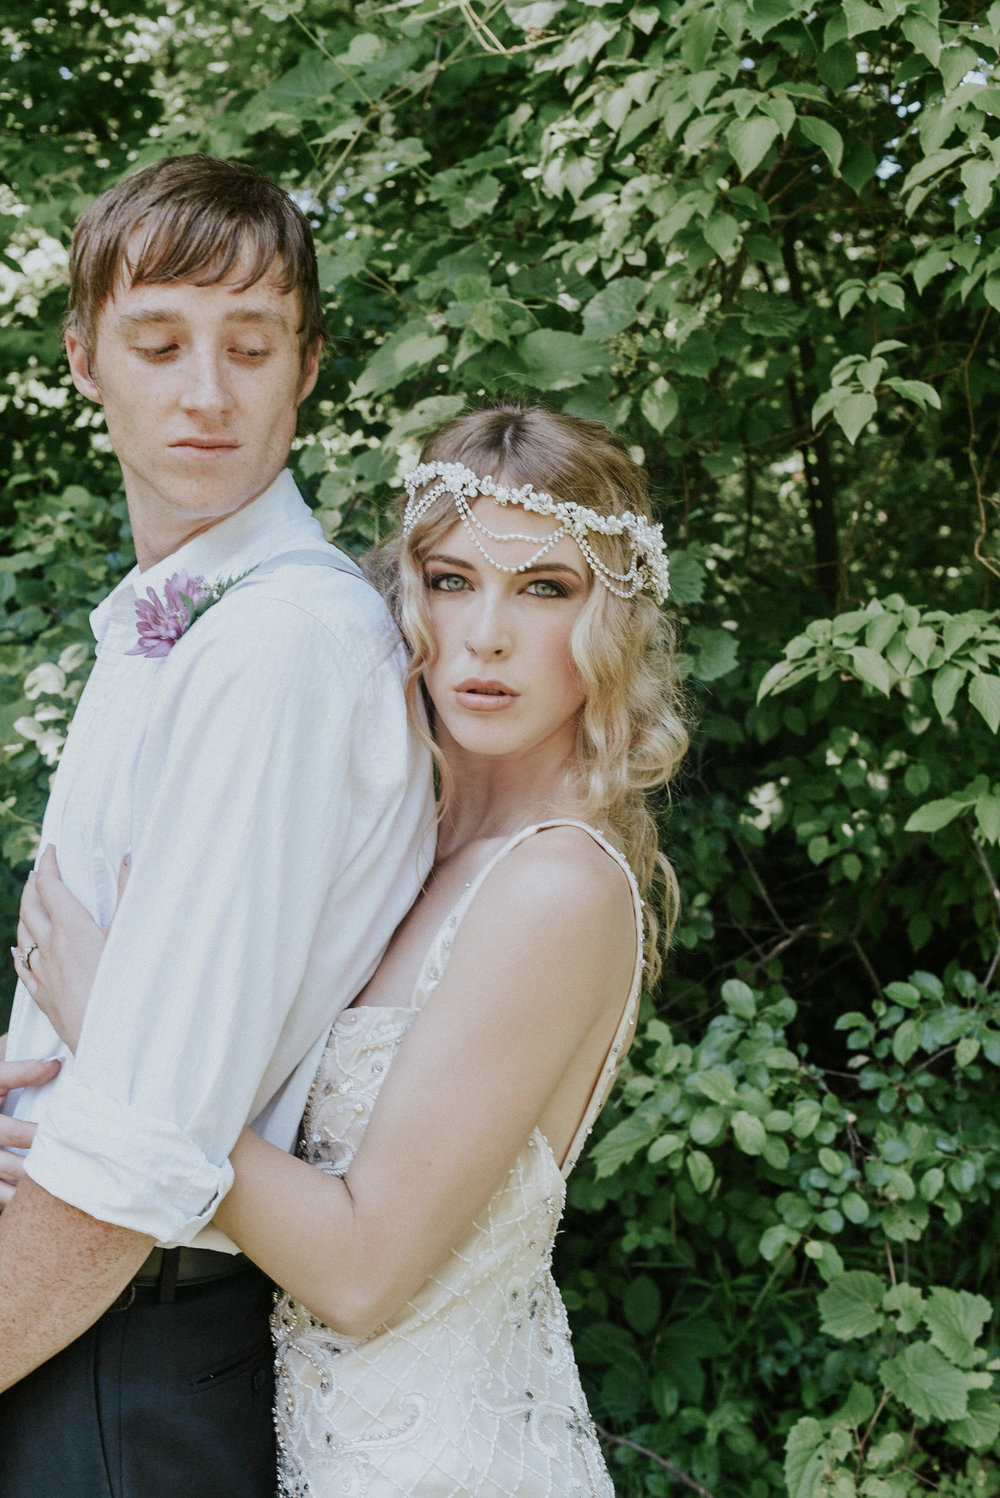 Pearl beaded bridal dress and headpiece styled shoot Ontario Canada